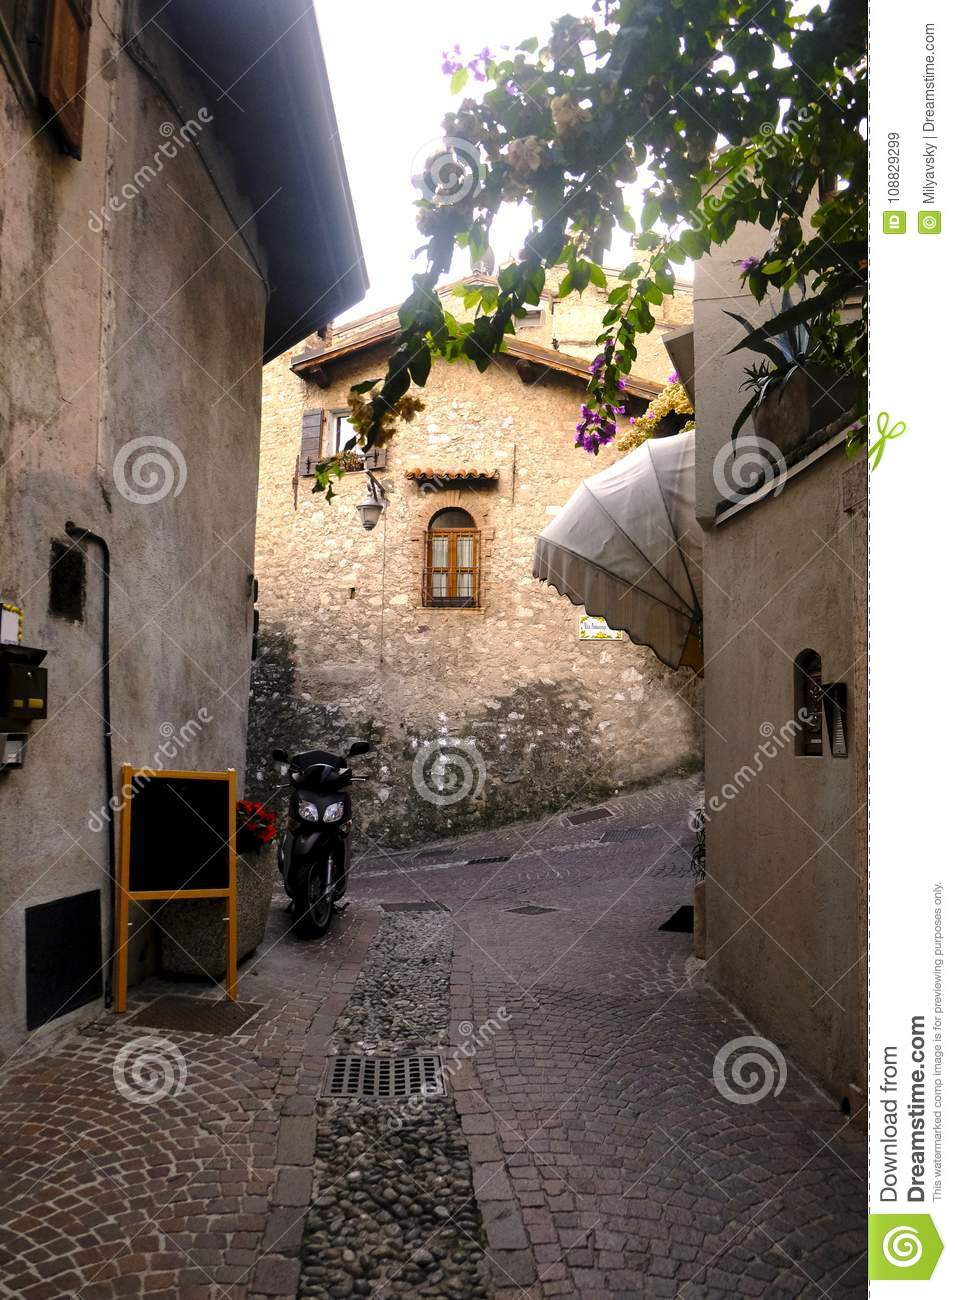 Cosiness of ancient towns